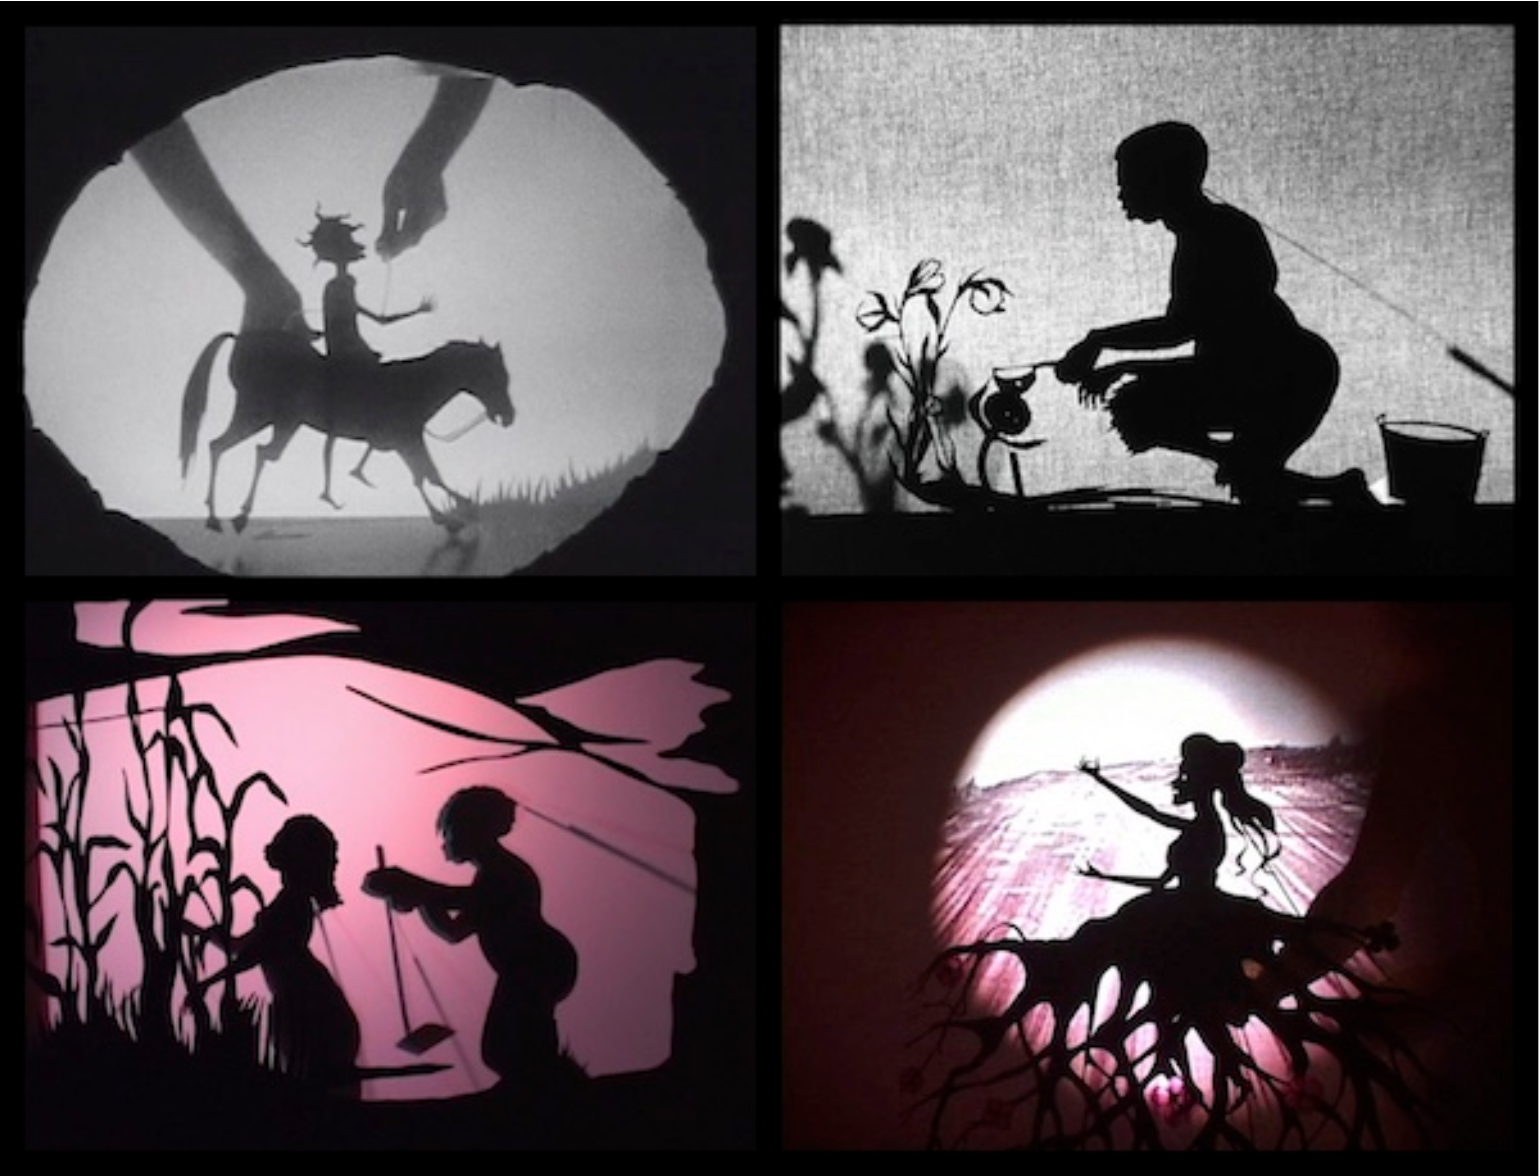 Four Kara Walker Video Stills arranged in a grid; Each depicts a figures or figures against a white or colored background